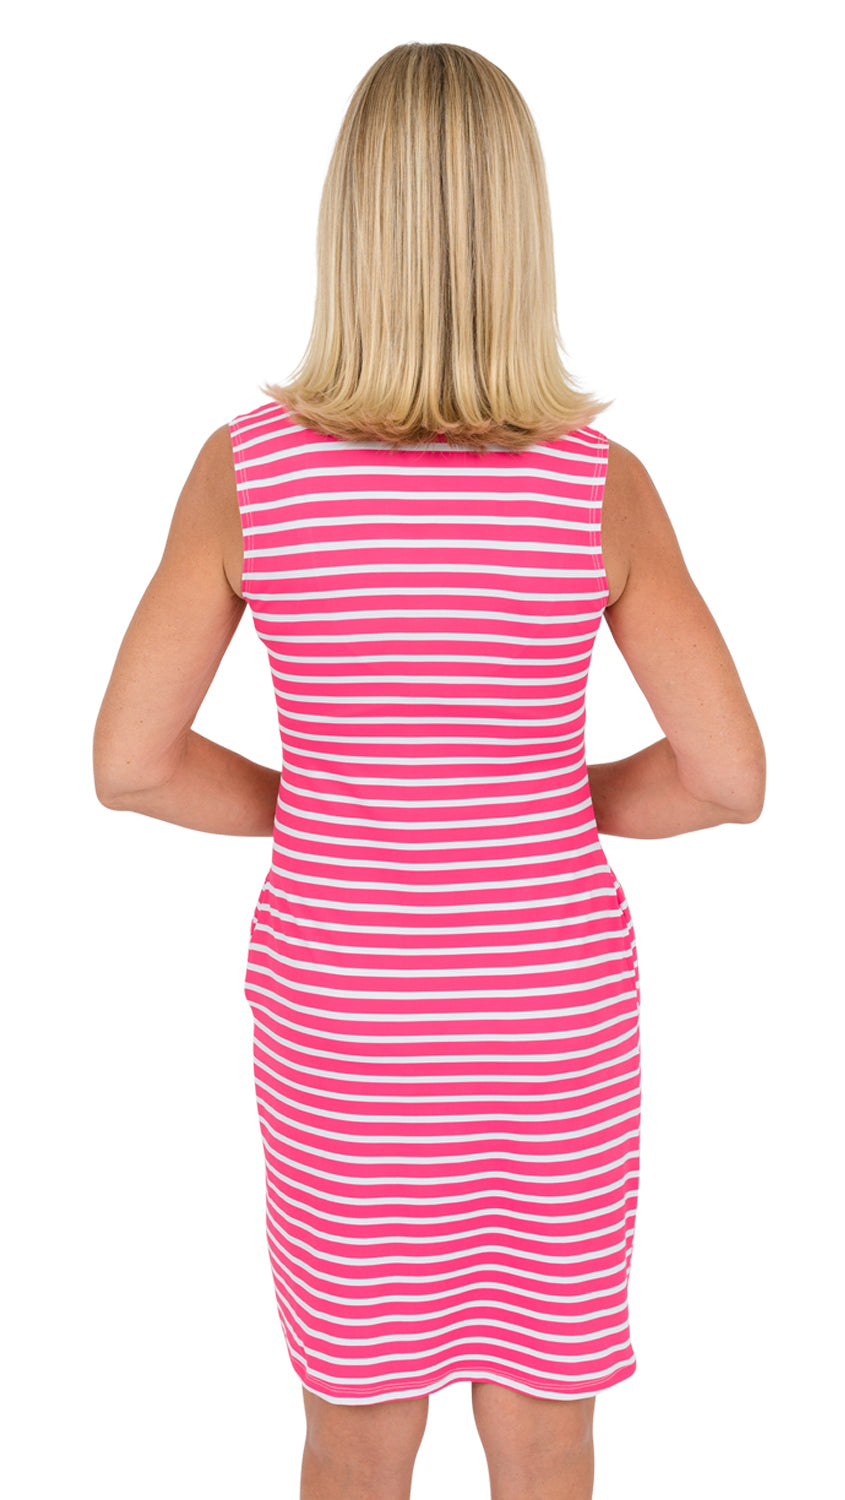 Port Dress Sleeveless - Summer Stripe Pink/White- SAMPLE FINAL SALE